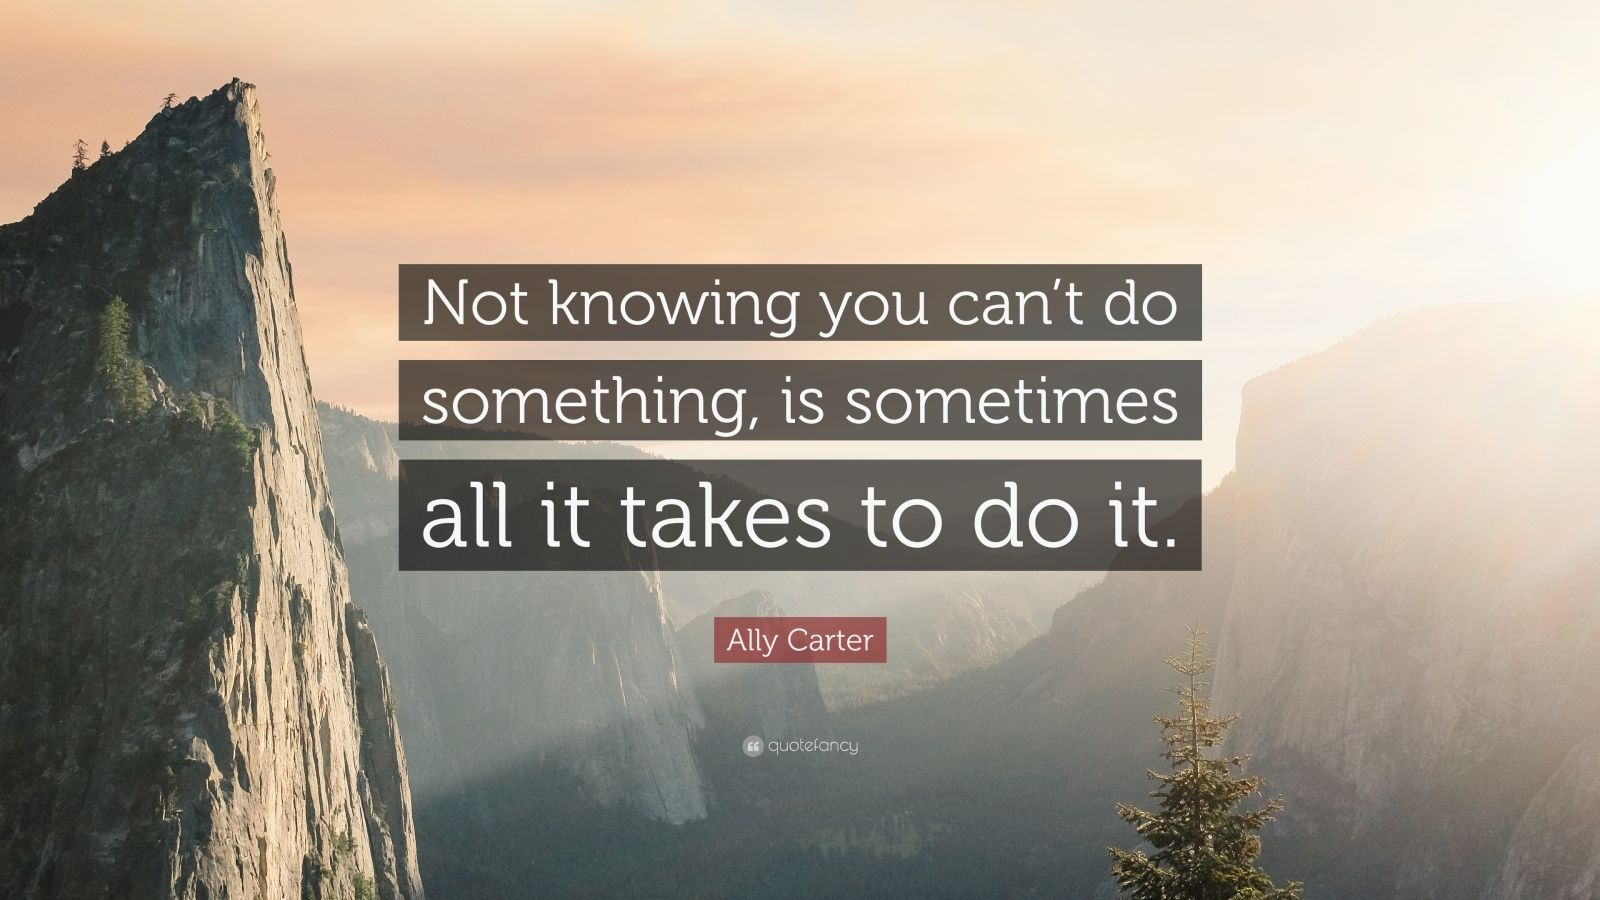 """Ally Carter Quote: """"Not knowing you can't do something, is sometimes all it takes to do it."""""""